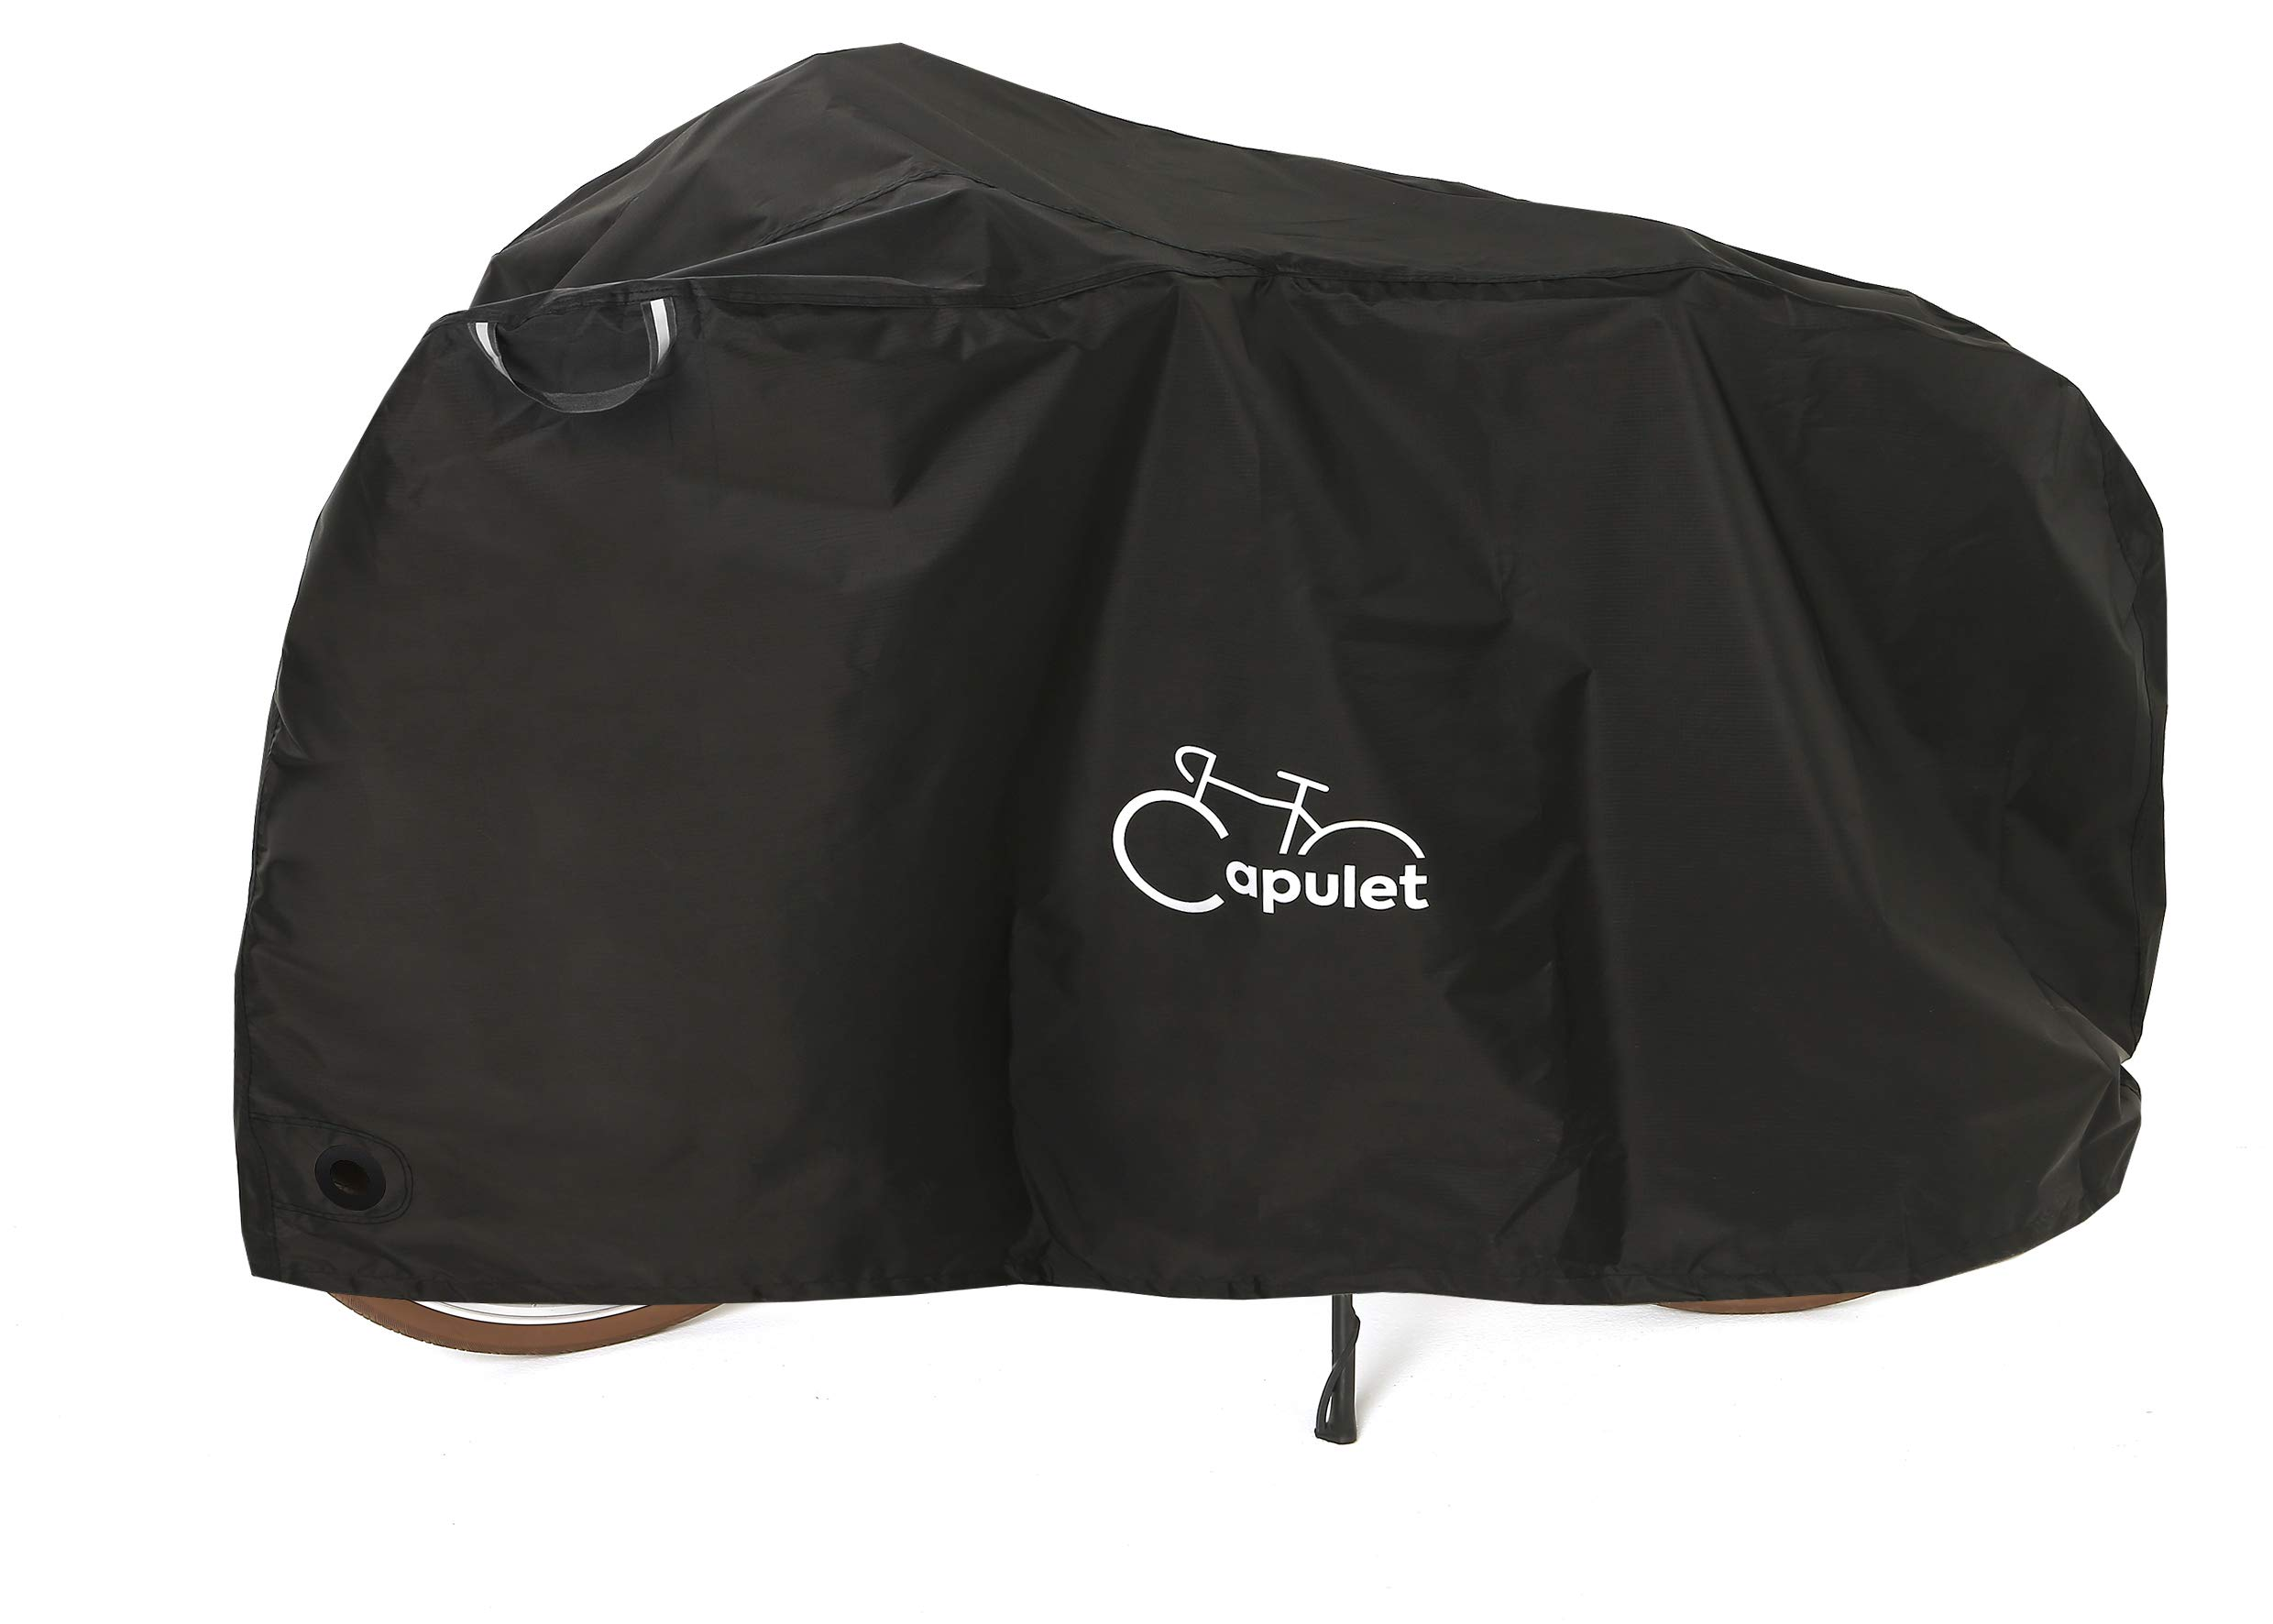 CAPULET Outdoor Bicycle Storage Cover, Ripstop Material for Professional Grade Heavy Duty All Weather Protection. Bike Seat Cover Included. Rust Proof & Universal for Mountain, Road, Electric Bike by CAPULET